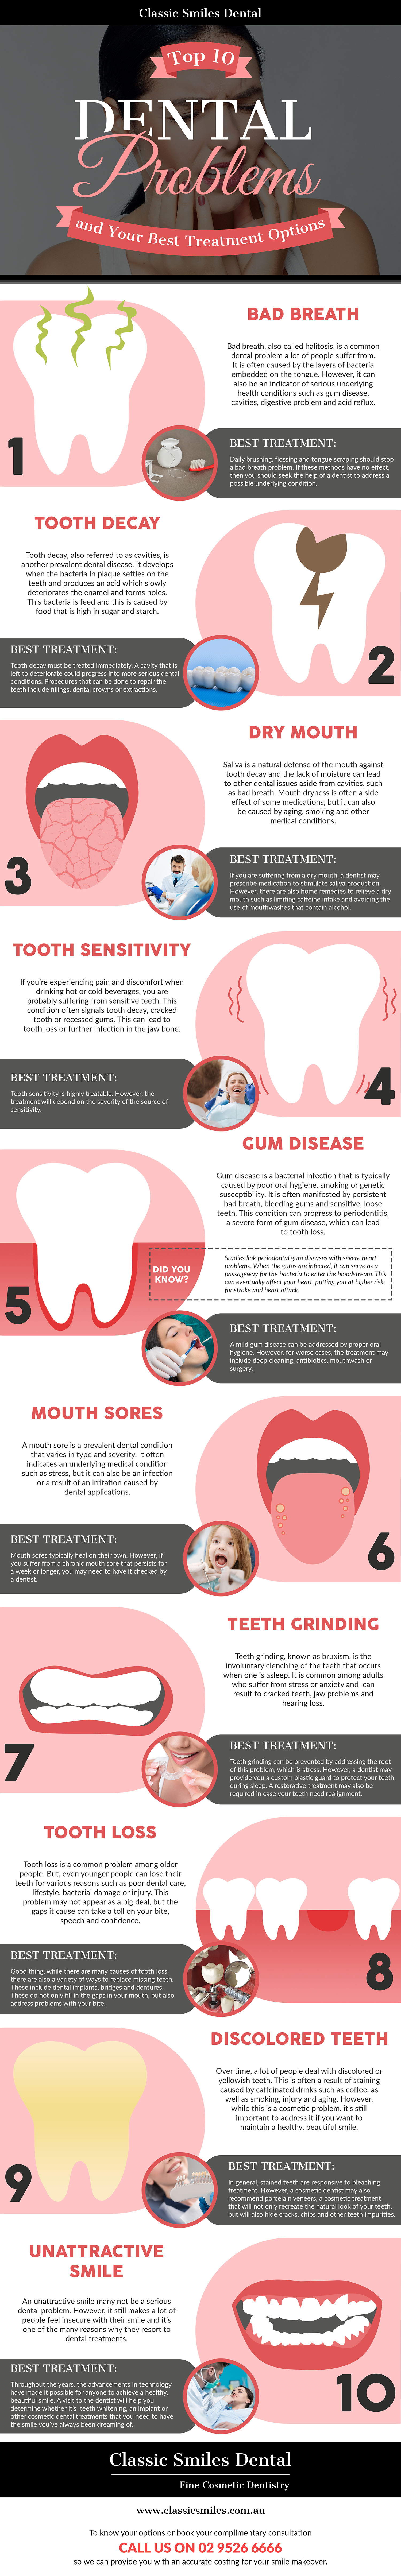 Top 10 Dental Problems and Your Best Treatment Options